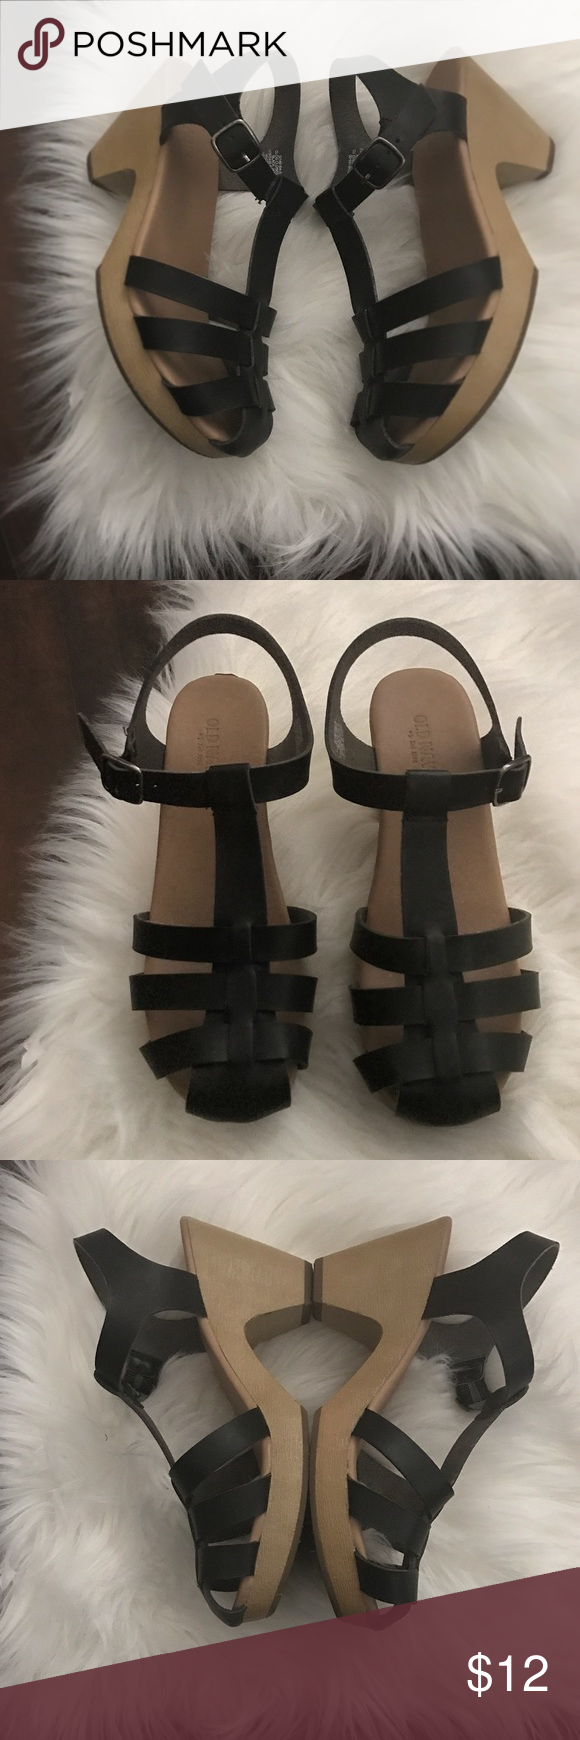 Old Navy Clogs Here's a super cute pair of clog heels from old navy! Very gently used and in great condition, with one minor peeling on the back heel of the right shoe as shown! Not crazy noticeable when wearing! Super light weight and so comfy! Perfect for summer time! Old Navy Shoes